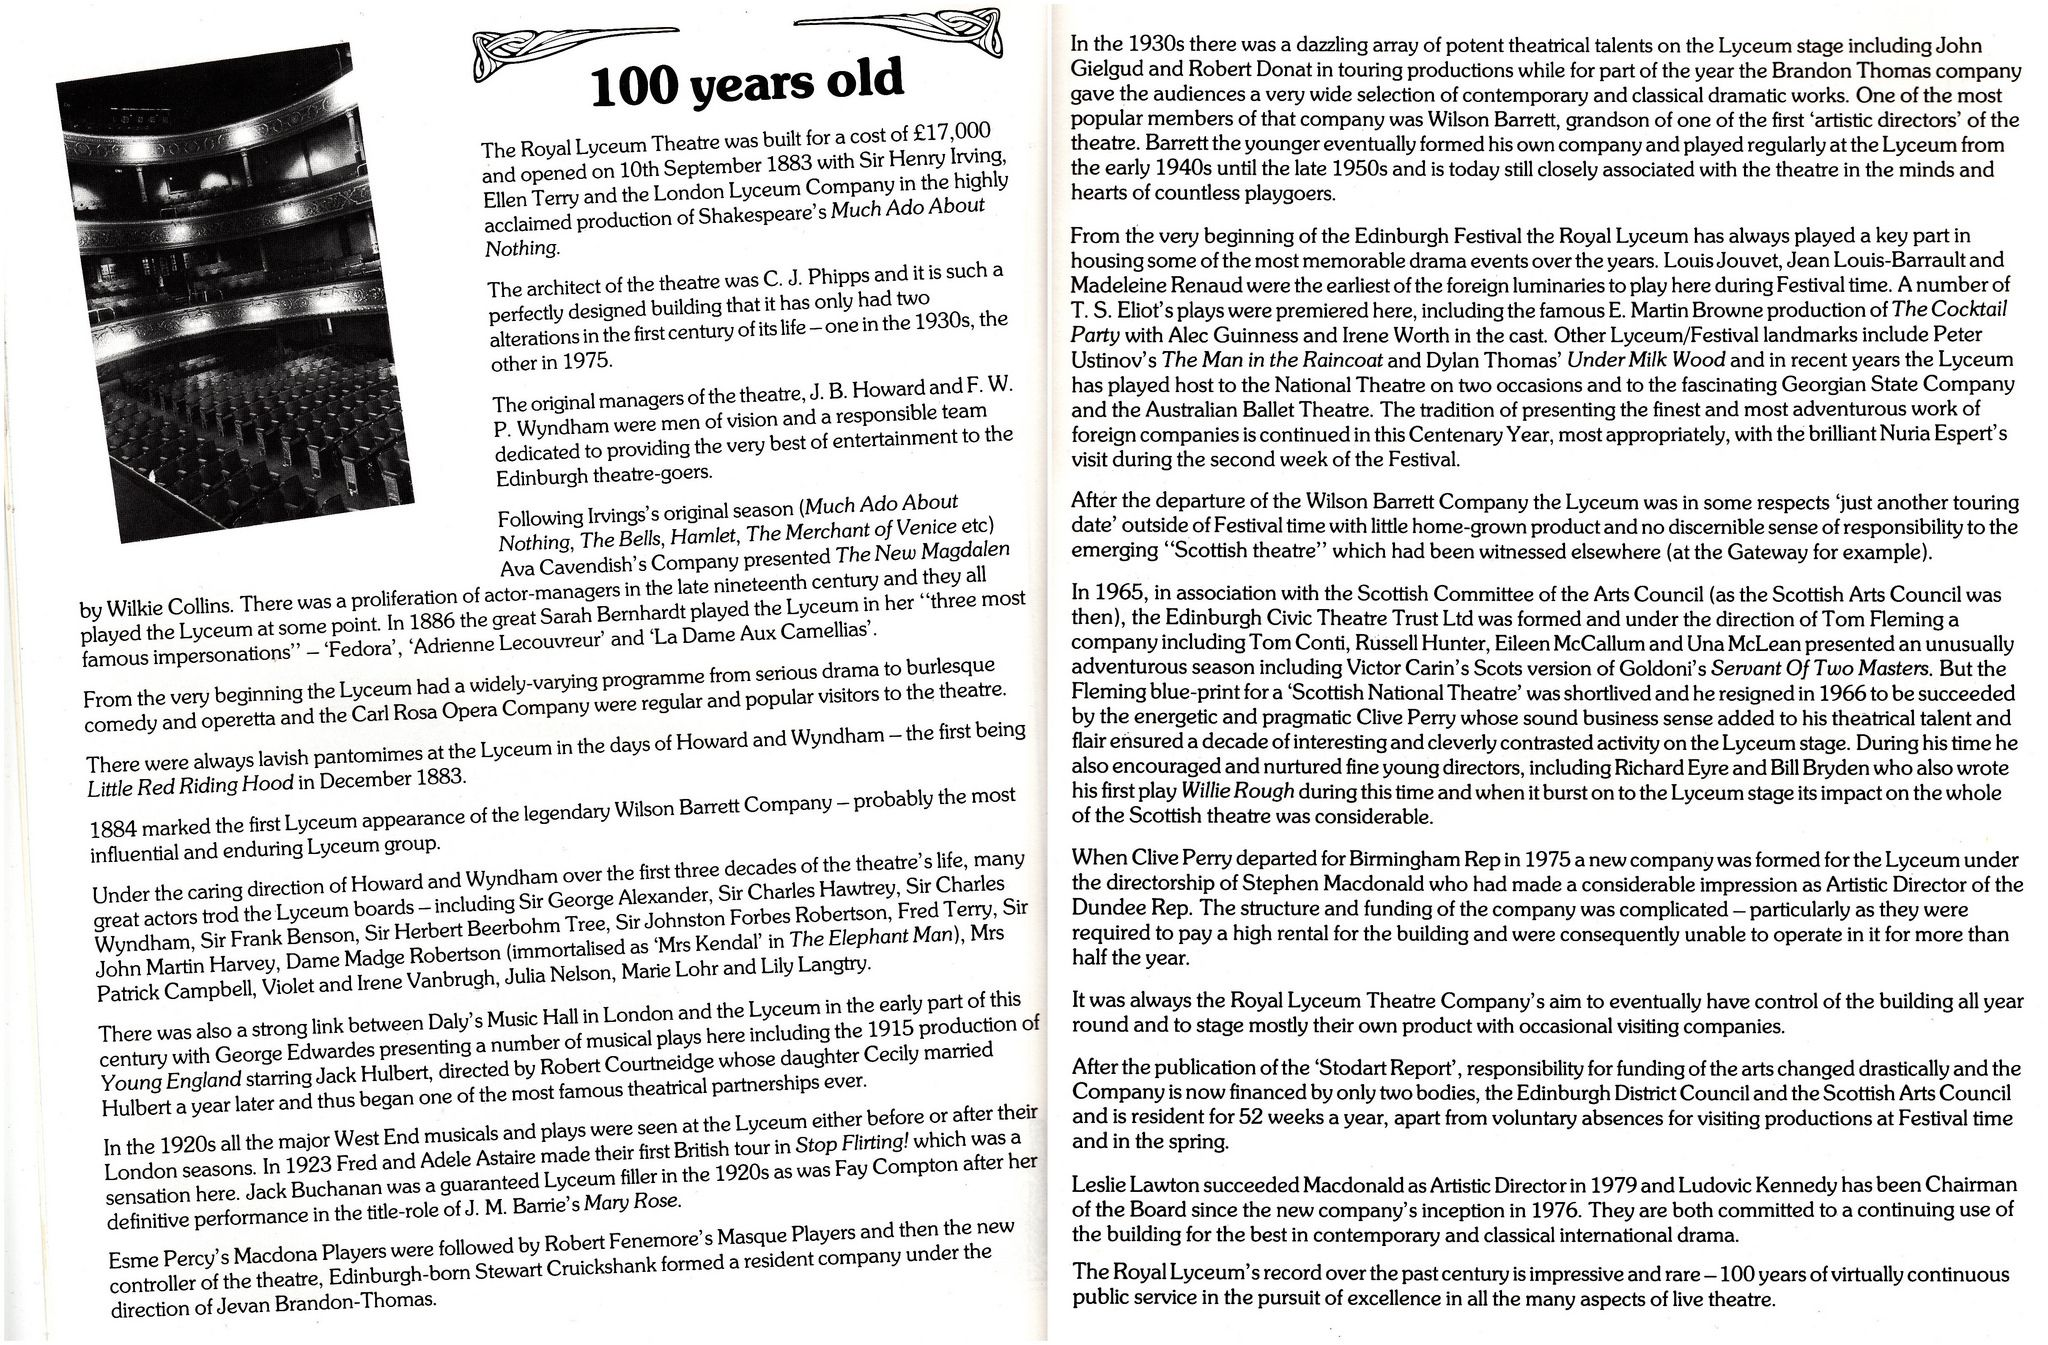 https://flic.kr/p/rysmTS | Lyceum 100 | Potted History of Royal Lyceum Theatre 1883 - 1983  Reproduced from Centenary Season Programme